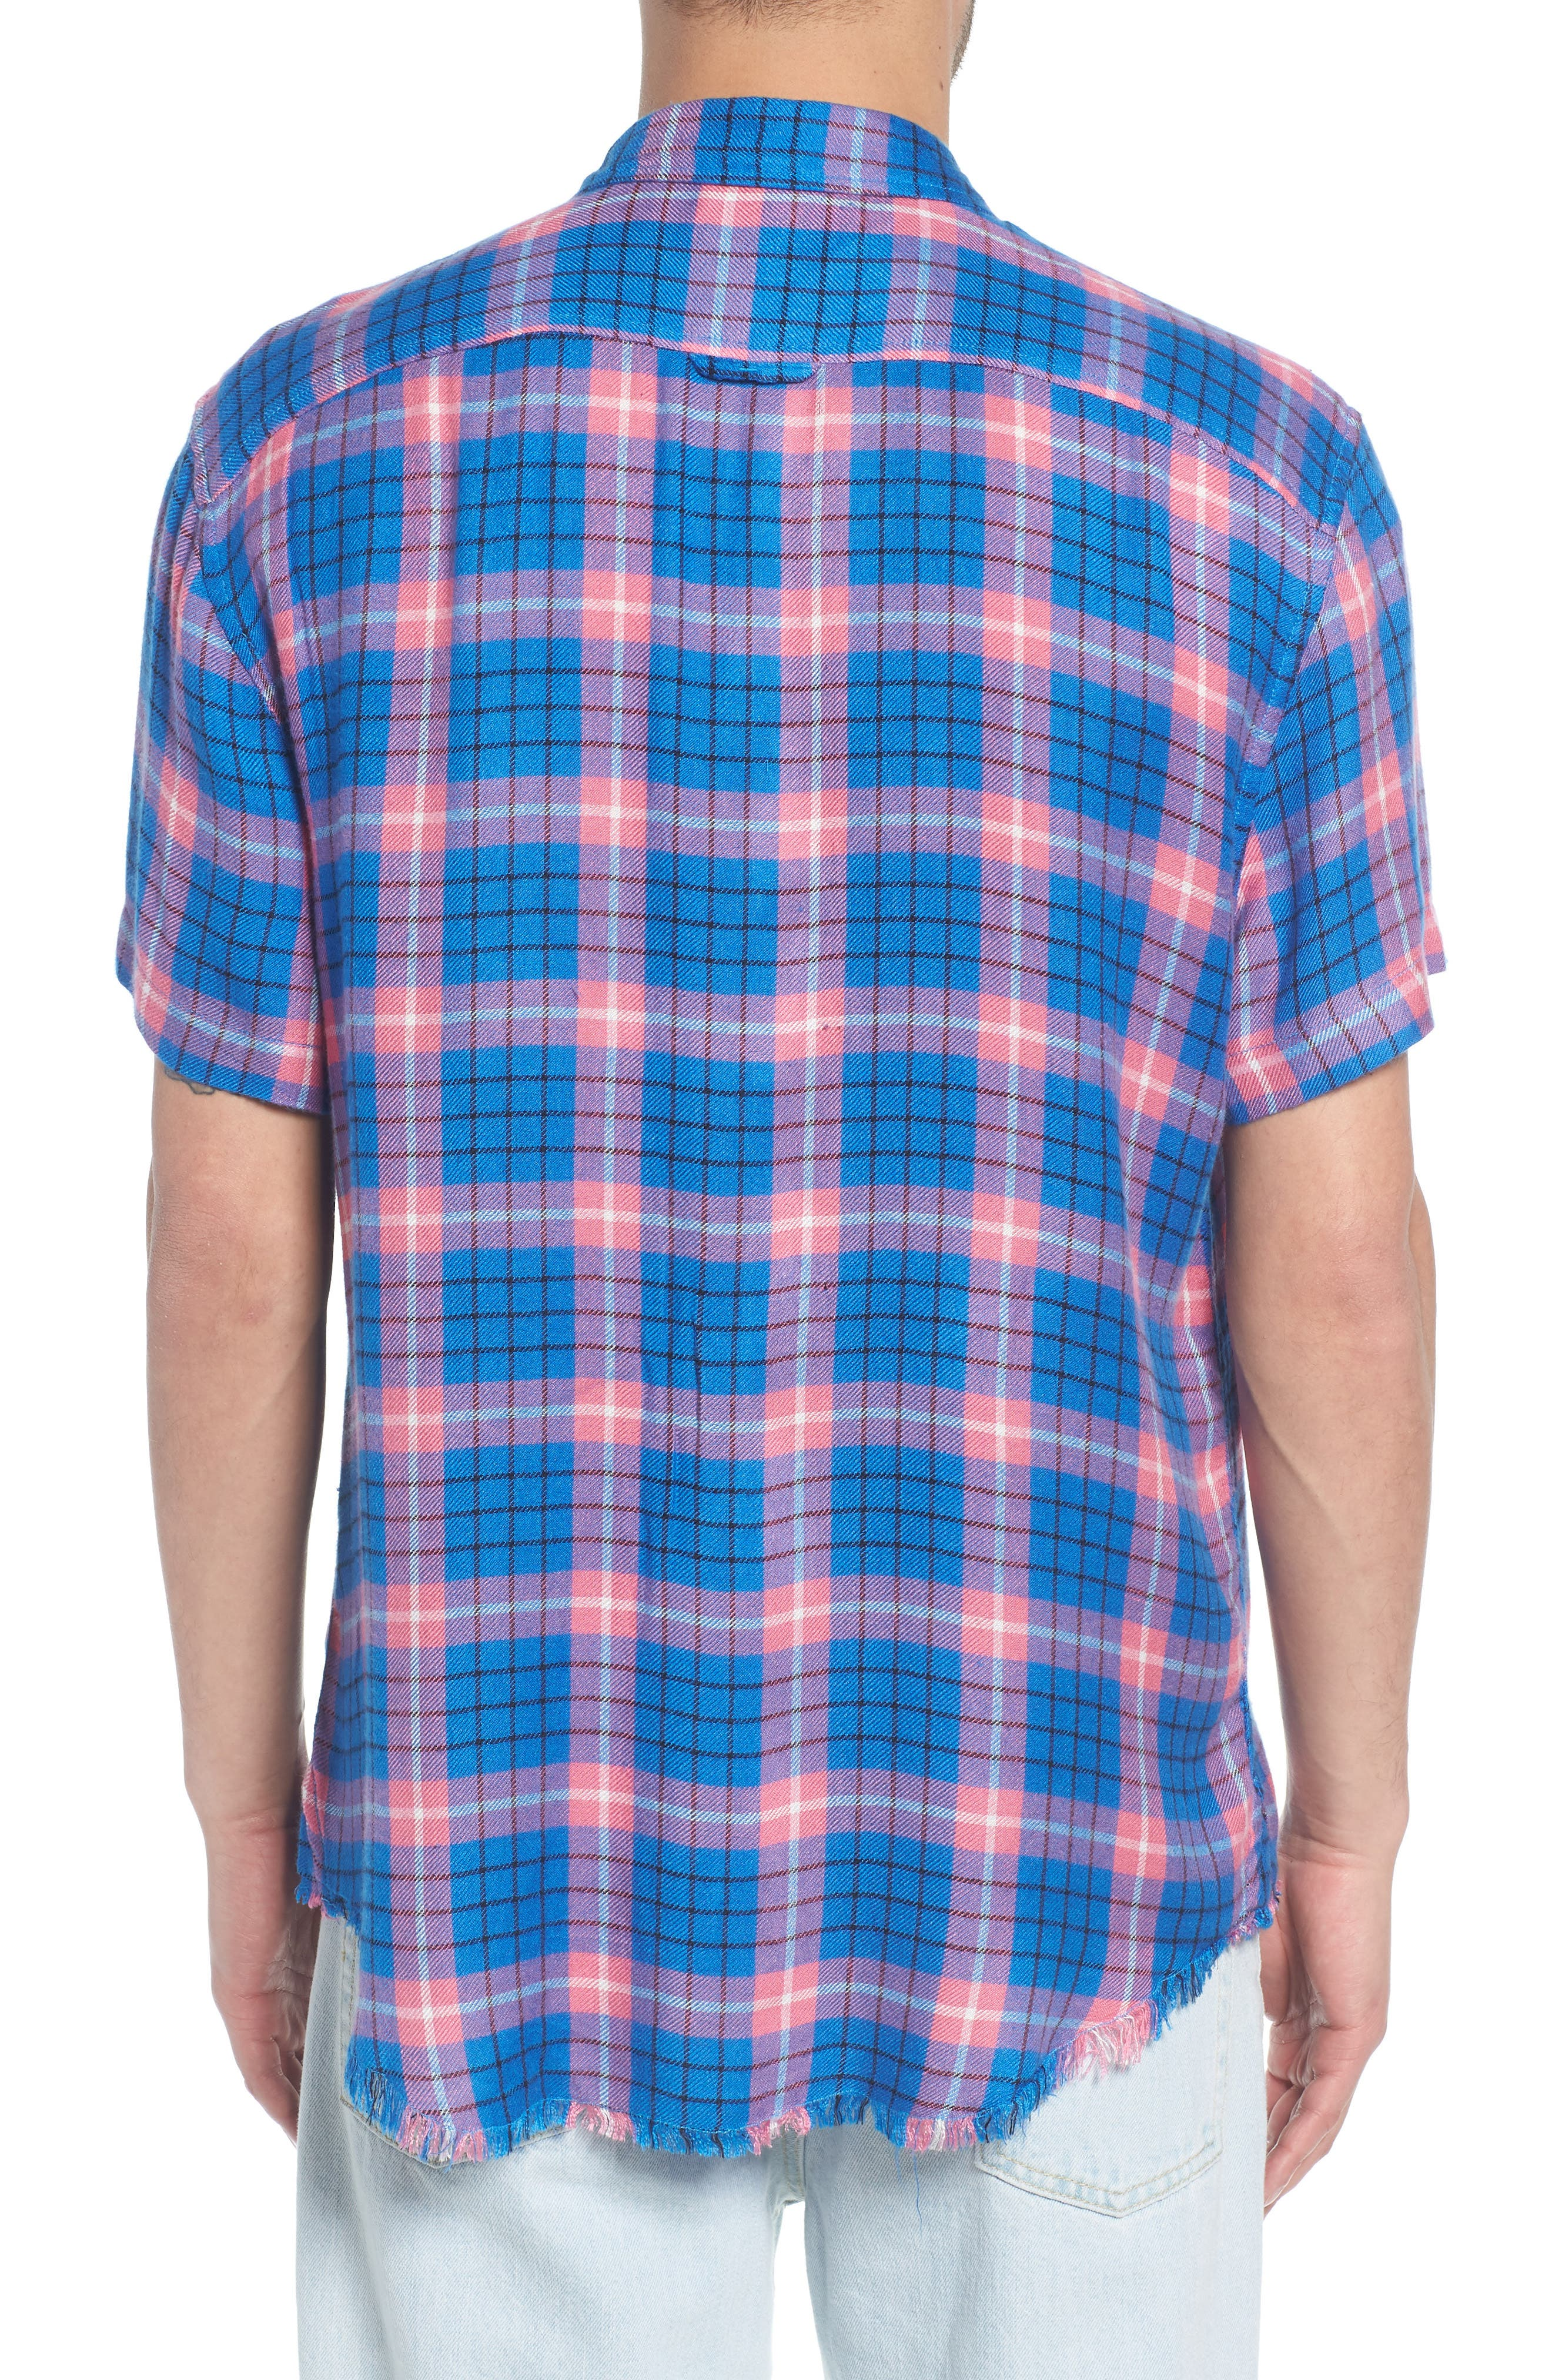 Flannel Woven Shirt,                             Alternate thumbnail 2, color,                             BLUE CAMP PINK BECK PLAID